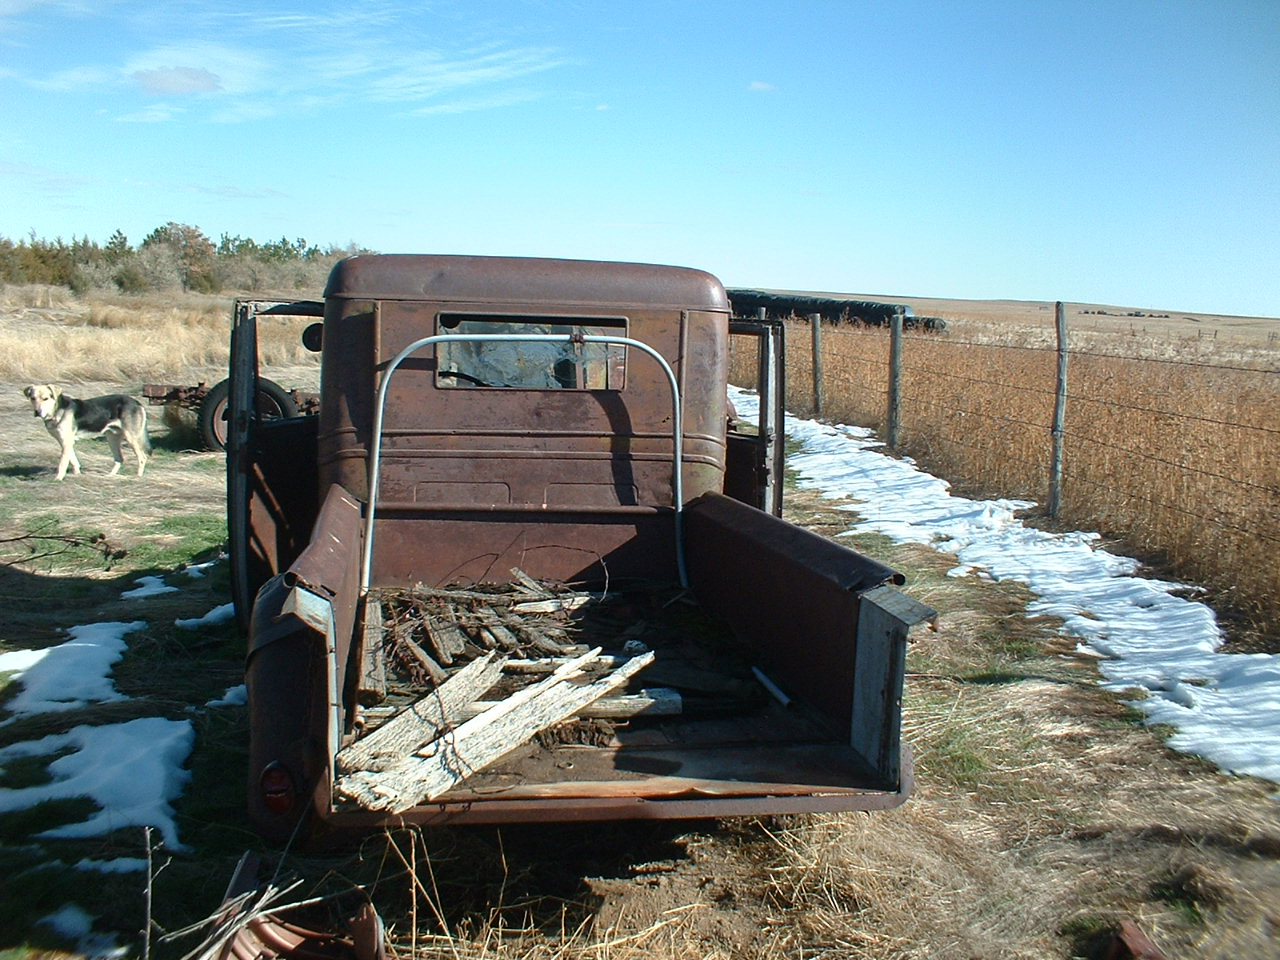 1933 Chevy Truck Parts http://www.justanswer.com/classic-cars/5oum5-need-price-1933-chevy-pickup-not-restored-price.html